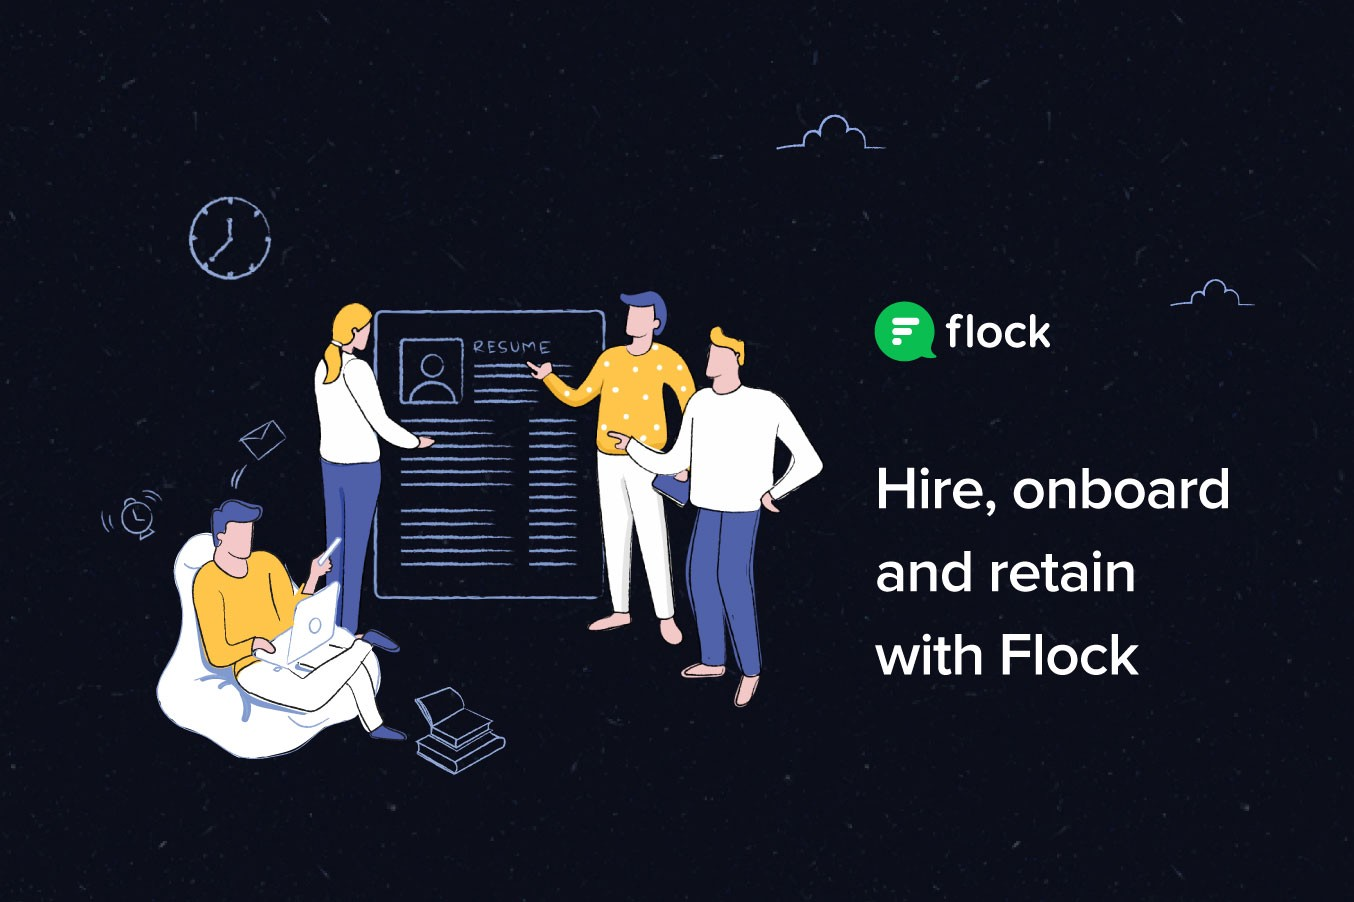 Graphic: hire, onboard and retain with Flock